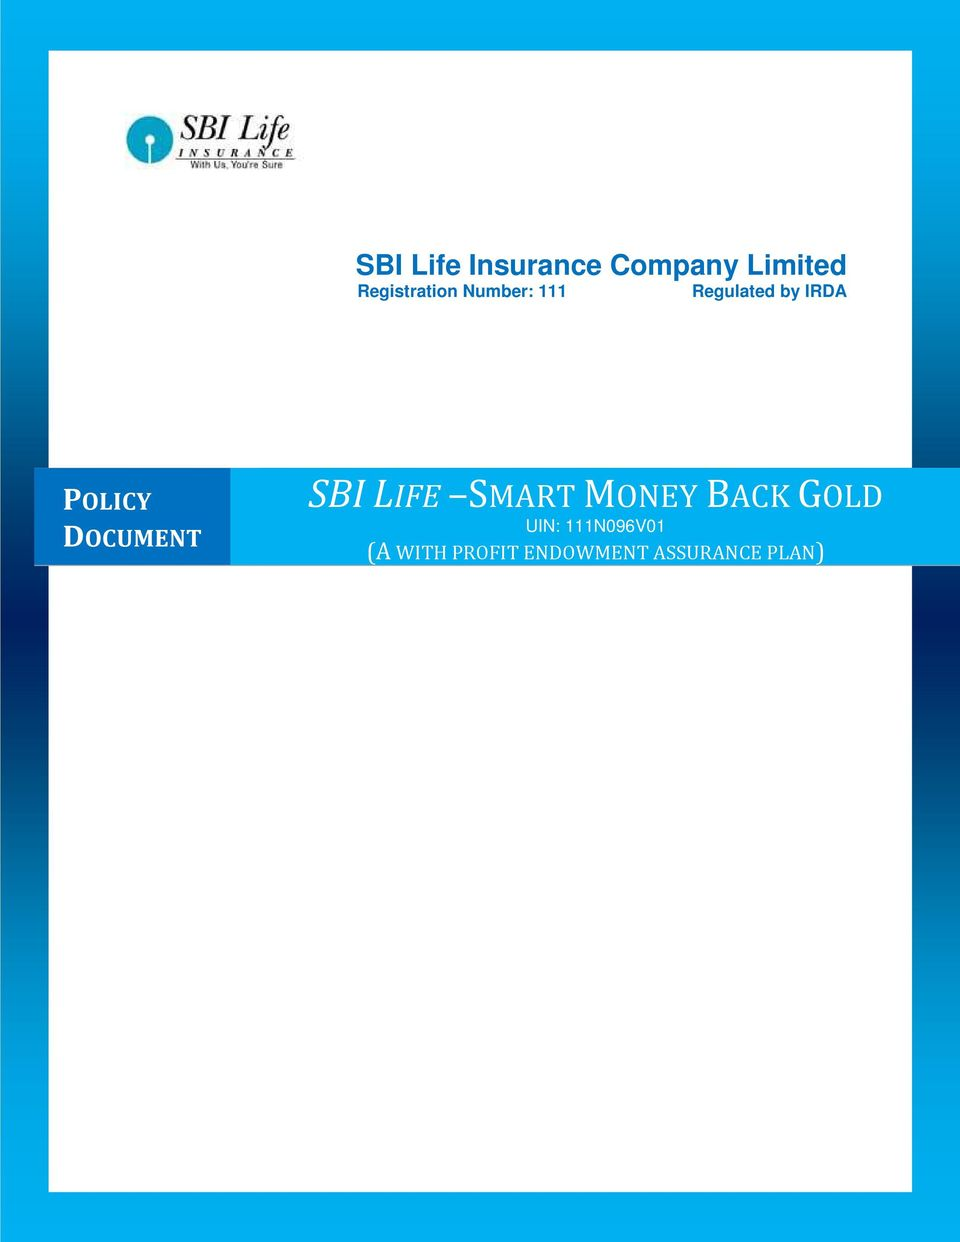 proIsrael: Smart Money Back Policy Sbi